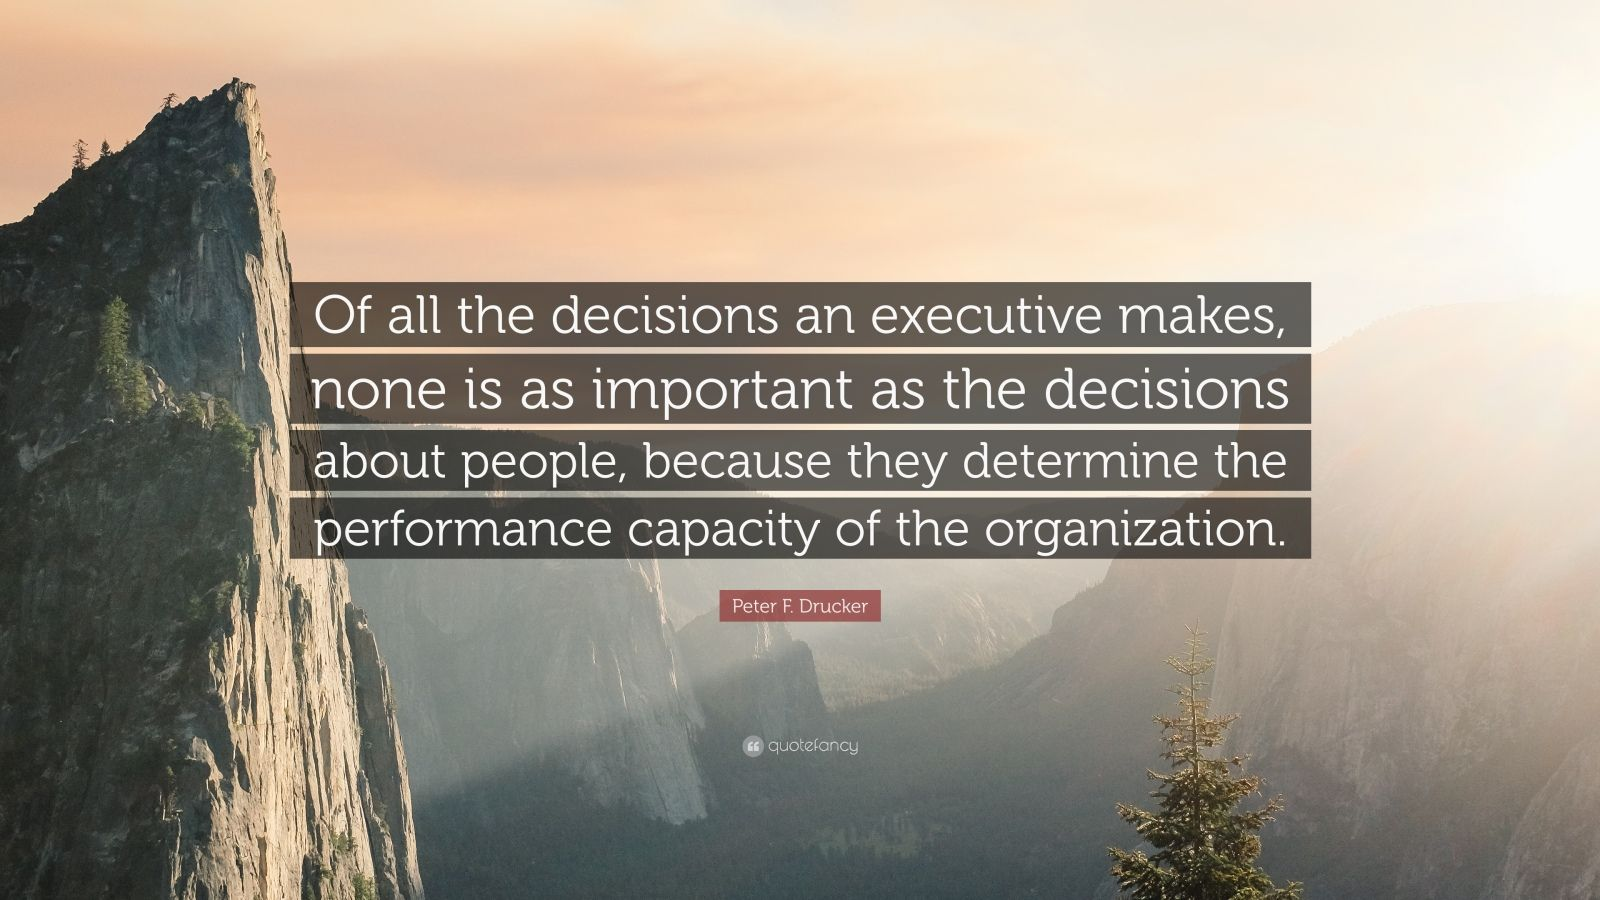 """Peter F. Drucker Quote: """"Of all the decisions an executive makes, none is as important as the decisions about people, because they determine the performance capacity of the organization."""""""